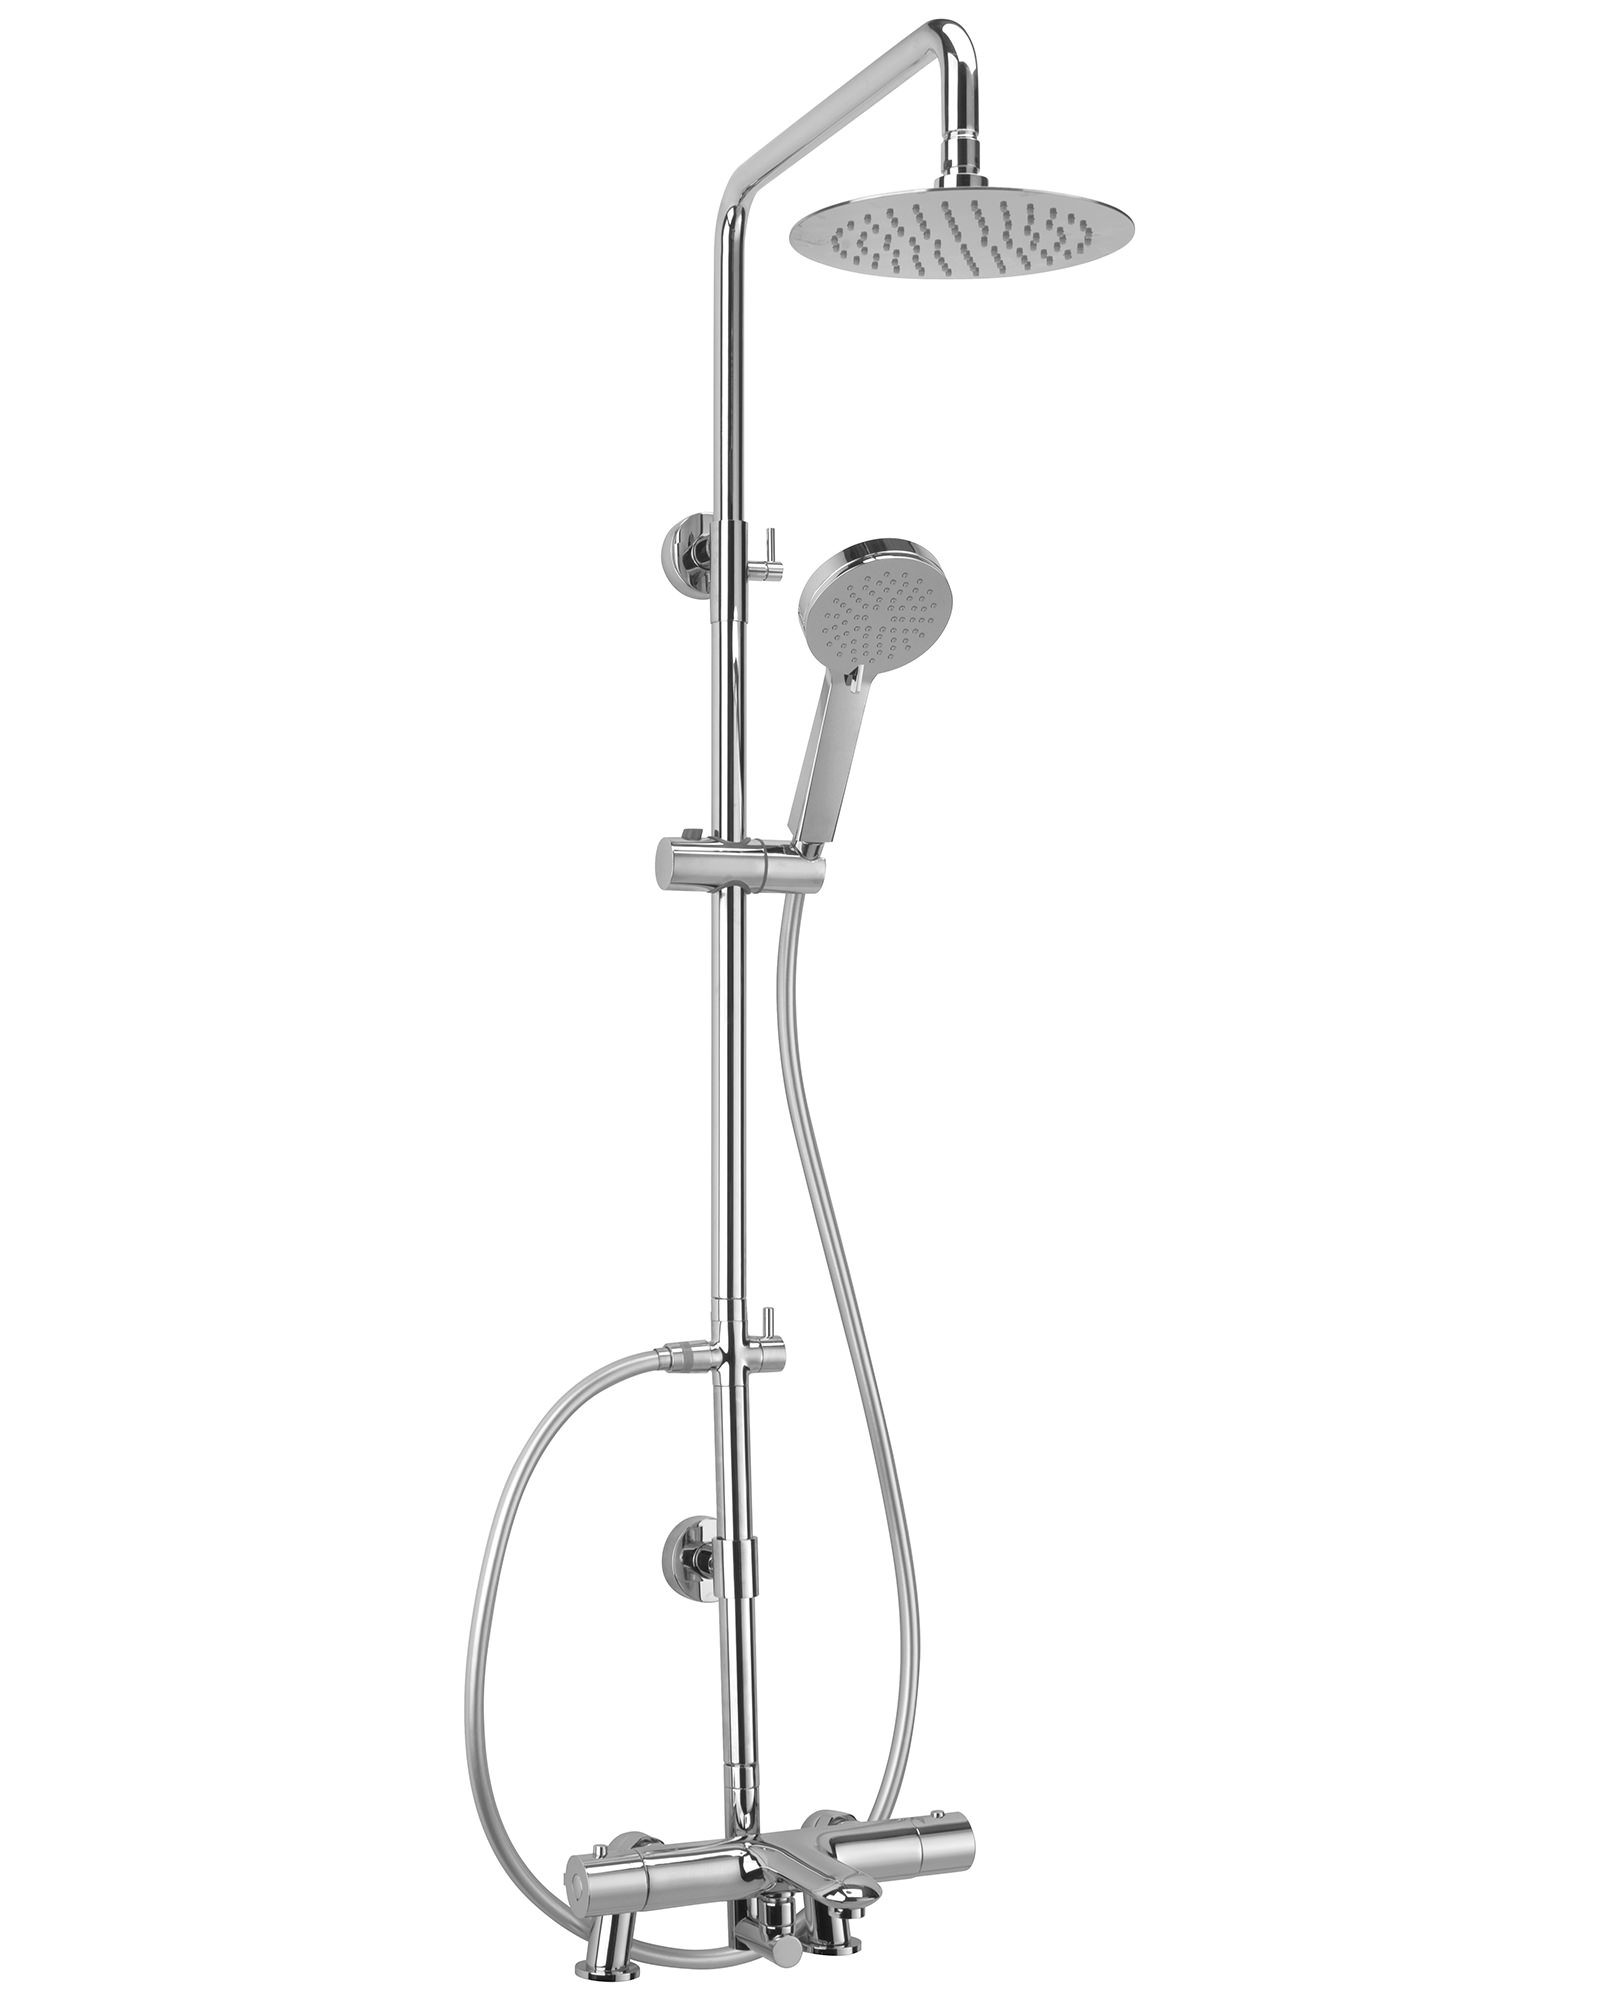 Sagittarius Logic Deck Mounted Bath Shower Mixer And Rigid